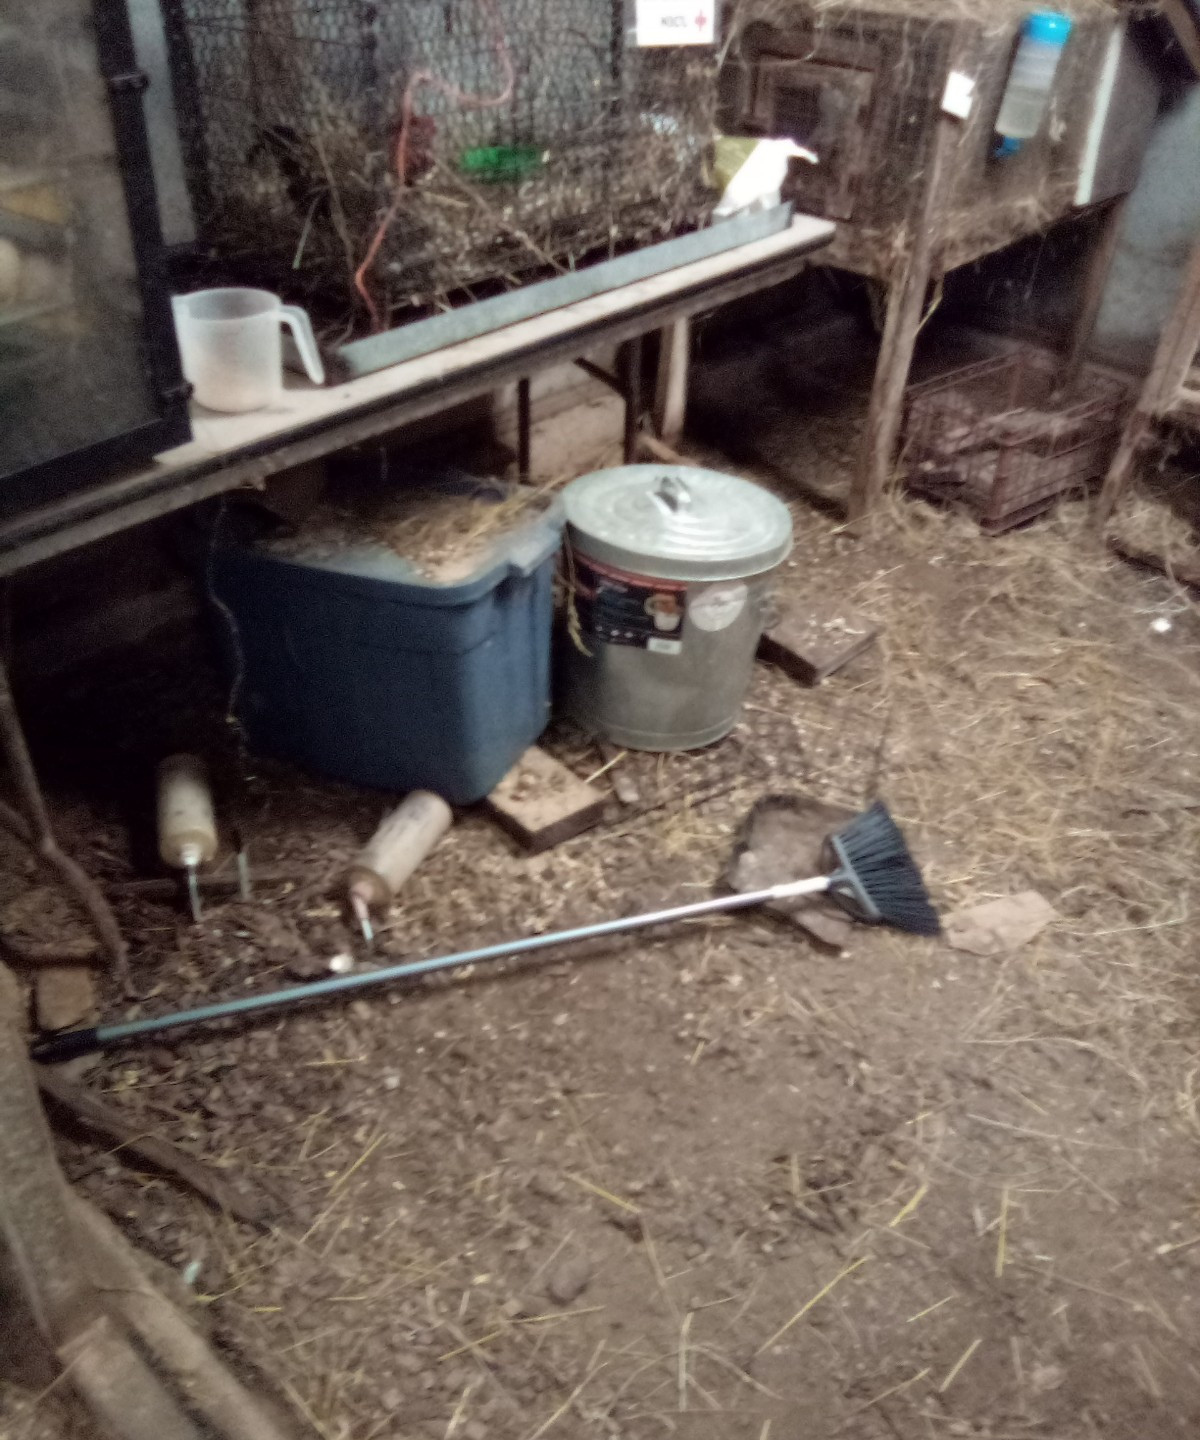 Broom and bunny bottle left on the ground to be stepped on, horse measuring cup not with horse feed